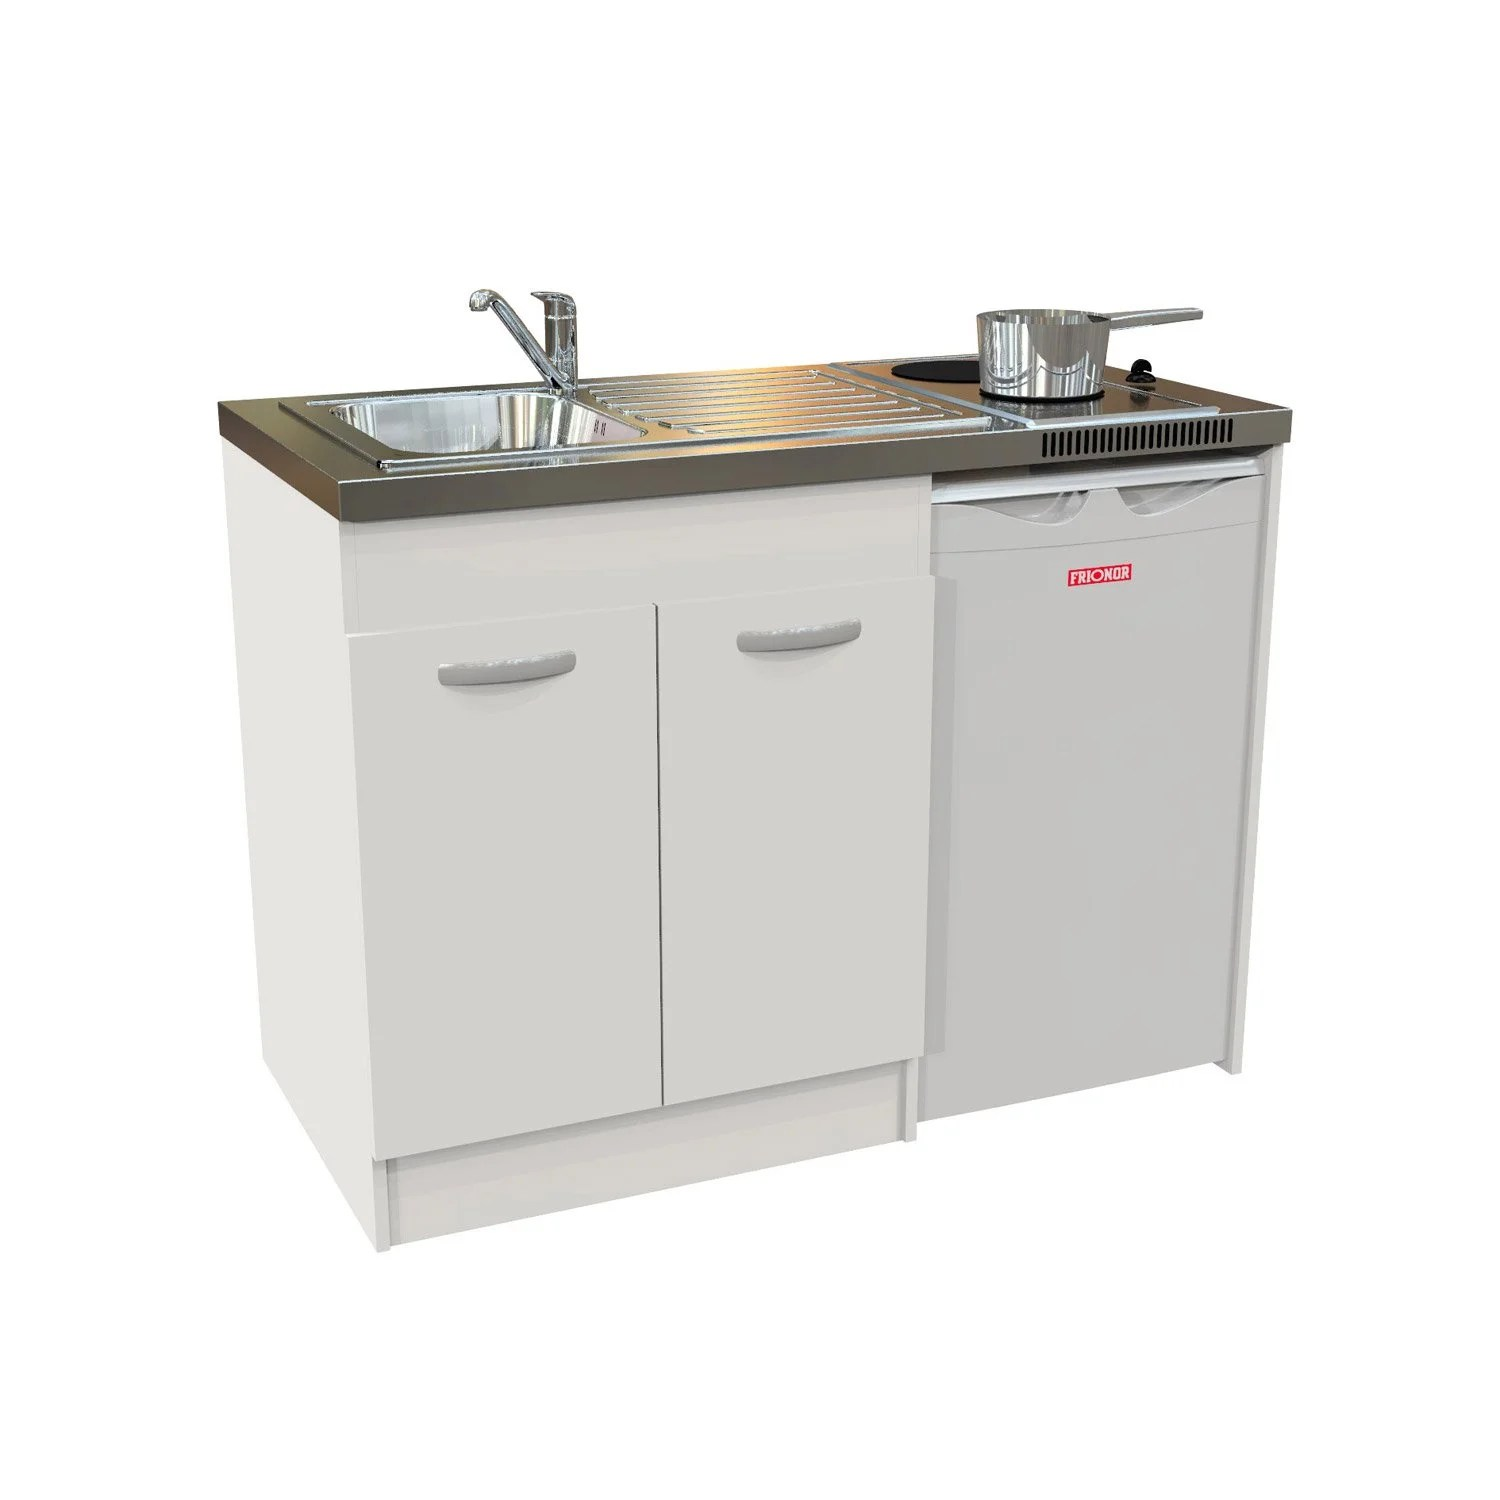 Kitchenette Leroy Merlin Kitchenette Spring électrique 120x60 Cm Blanc Leroy Merlin